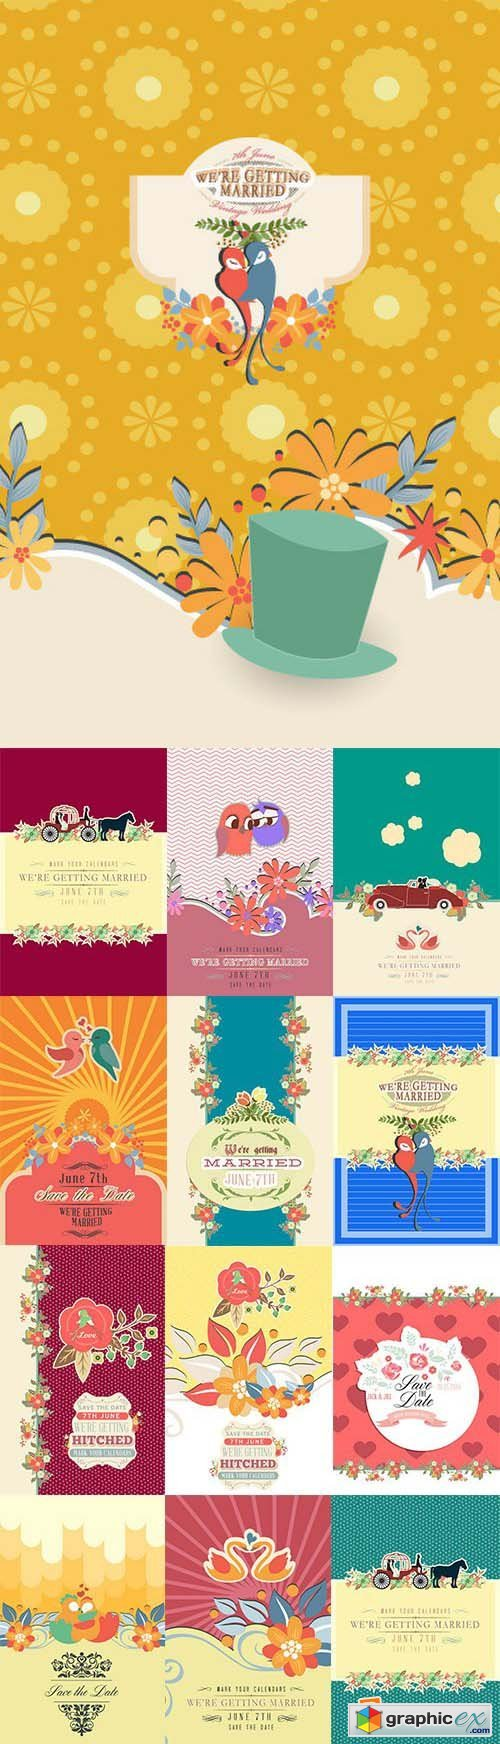 Vectorious 100 Wedding Vectors Collection